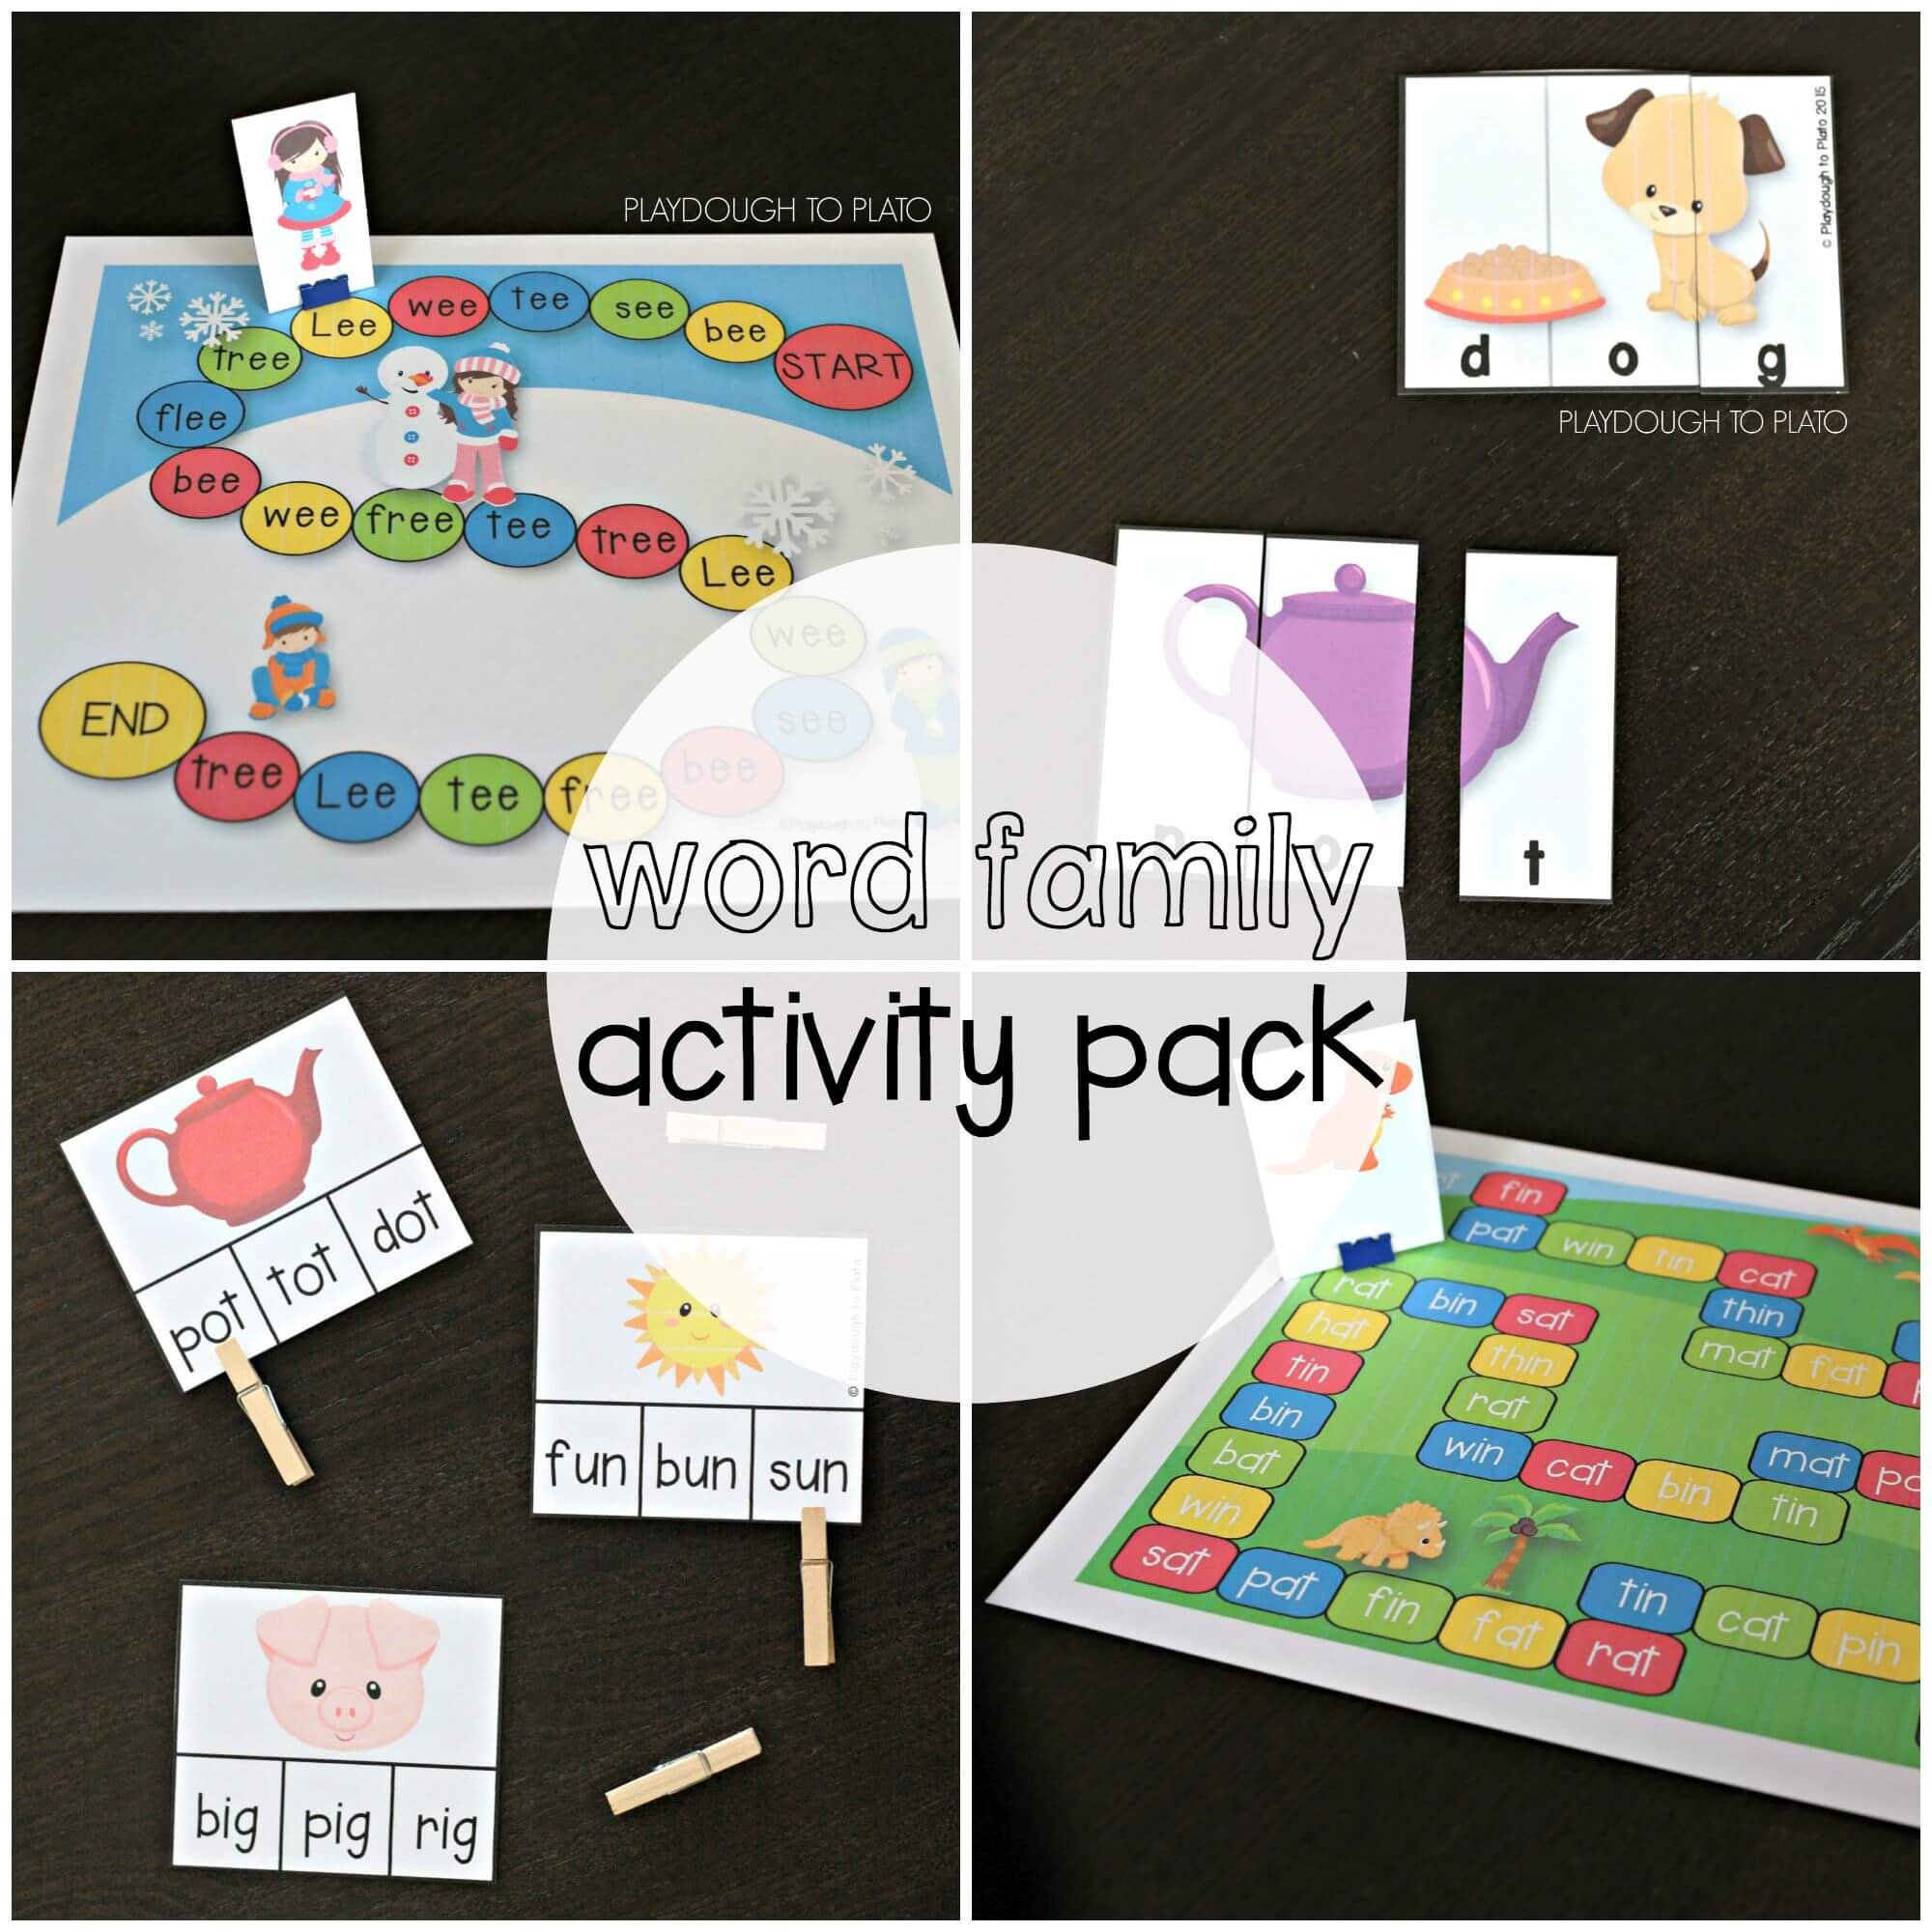 Word Family Activity Pack